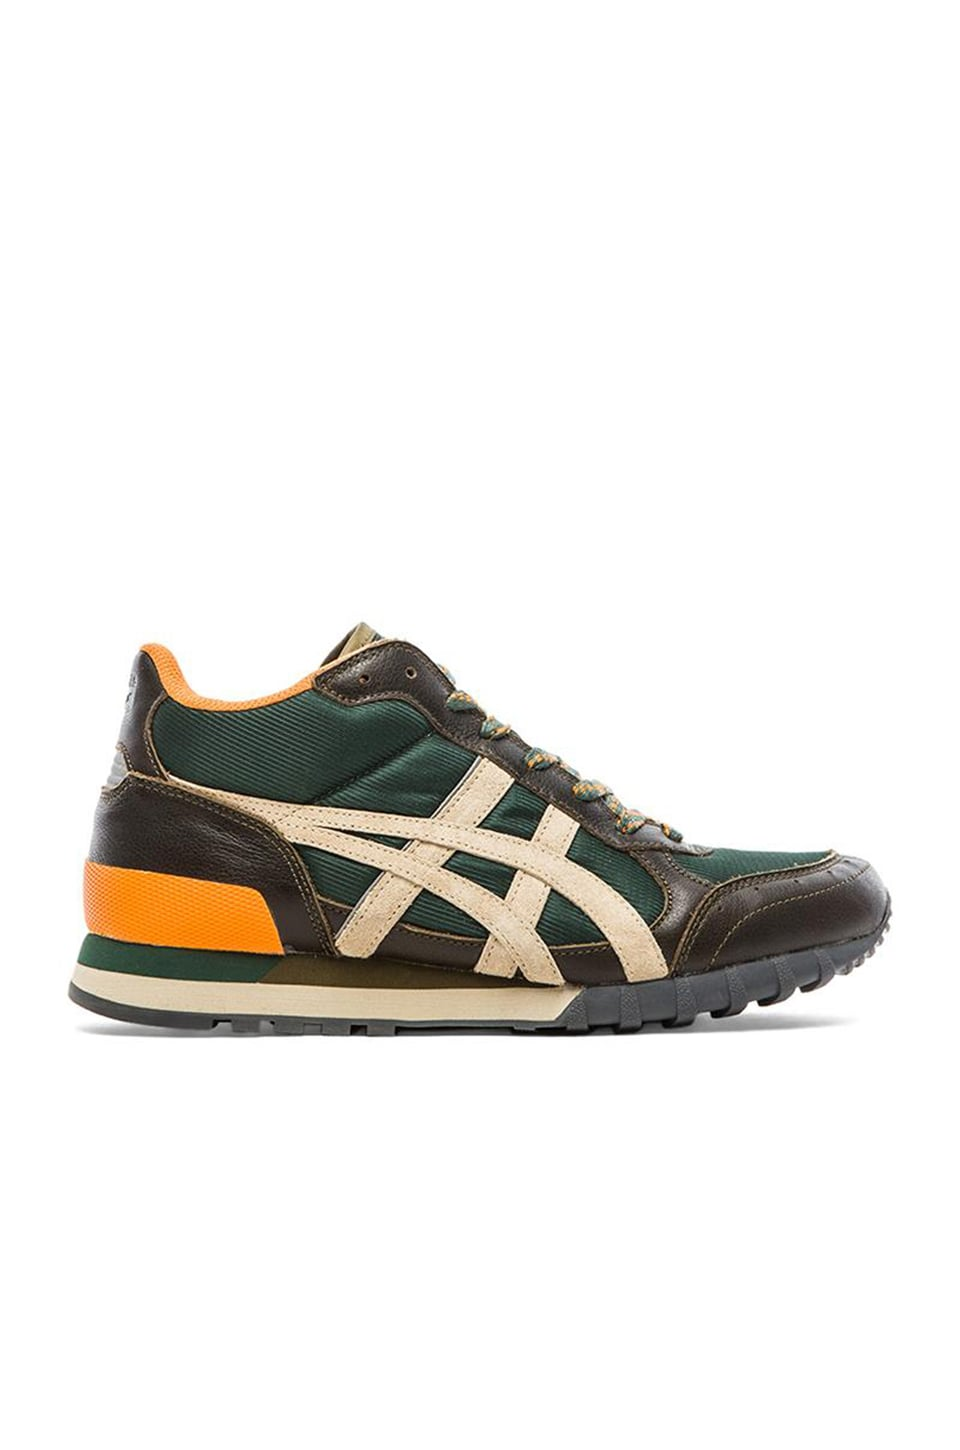 buy online 39a40 f729c Onitsuka Tiger Colorado Eighty-Five MT in Dark Green & Sand ...